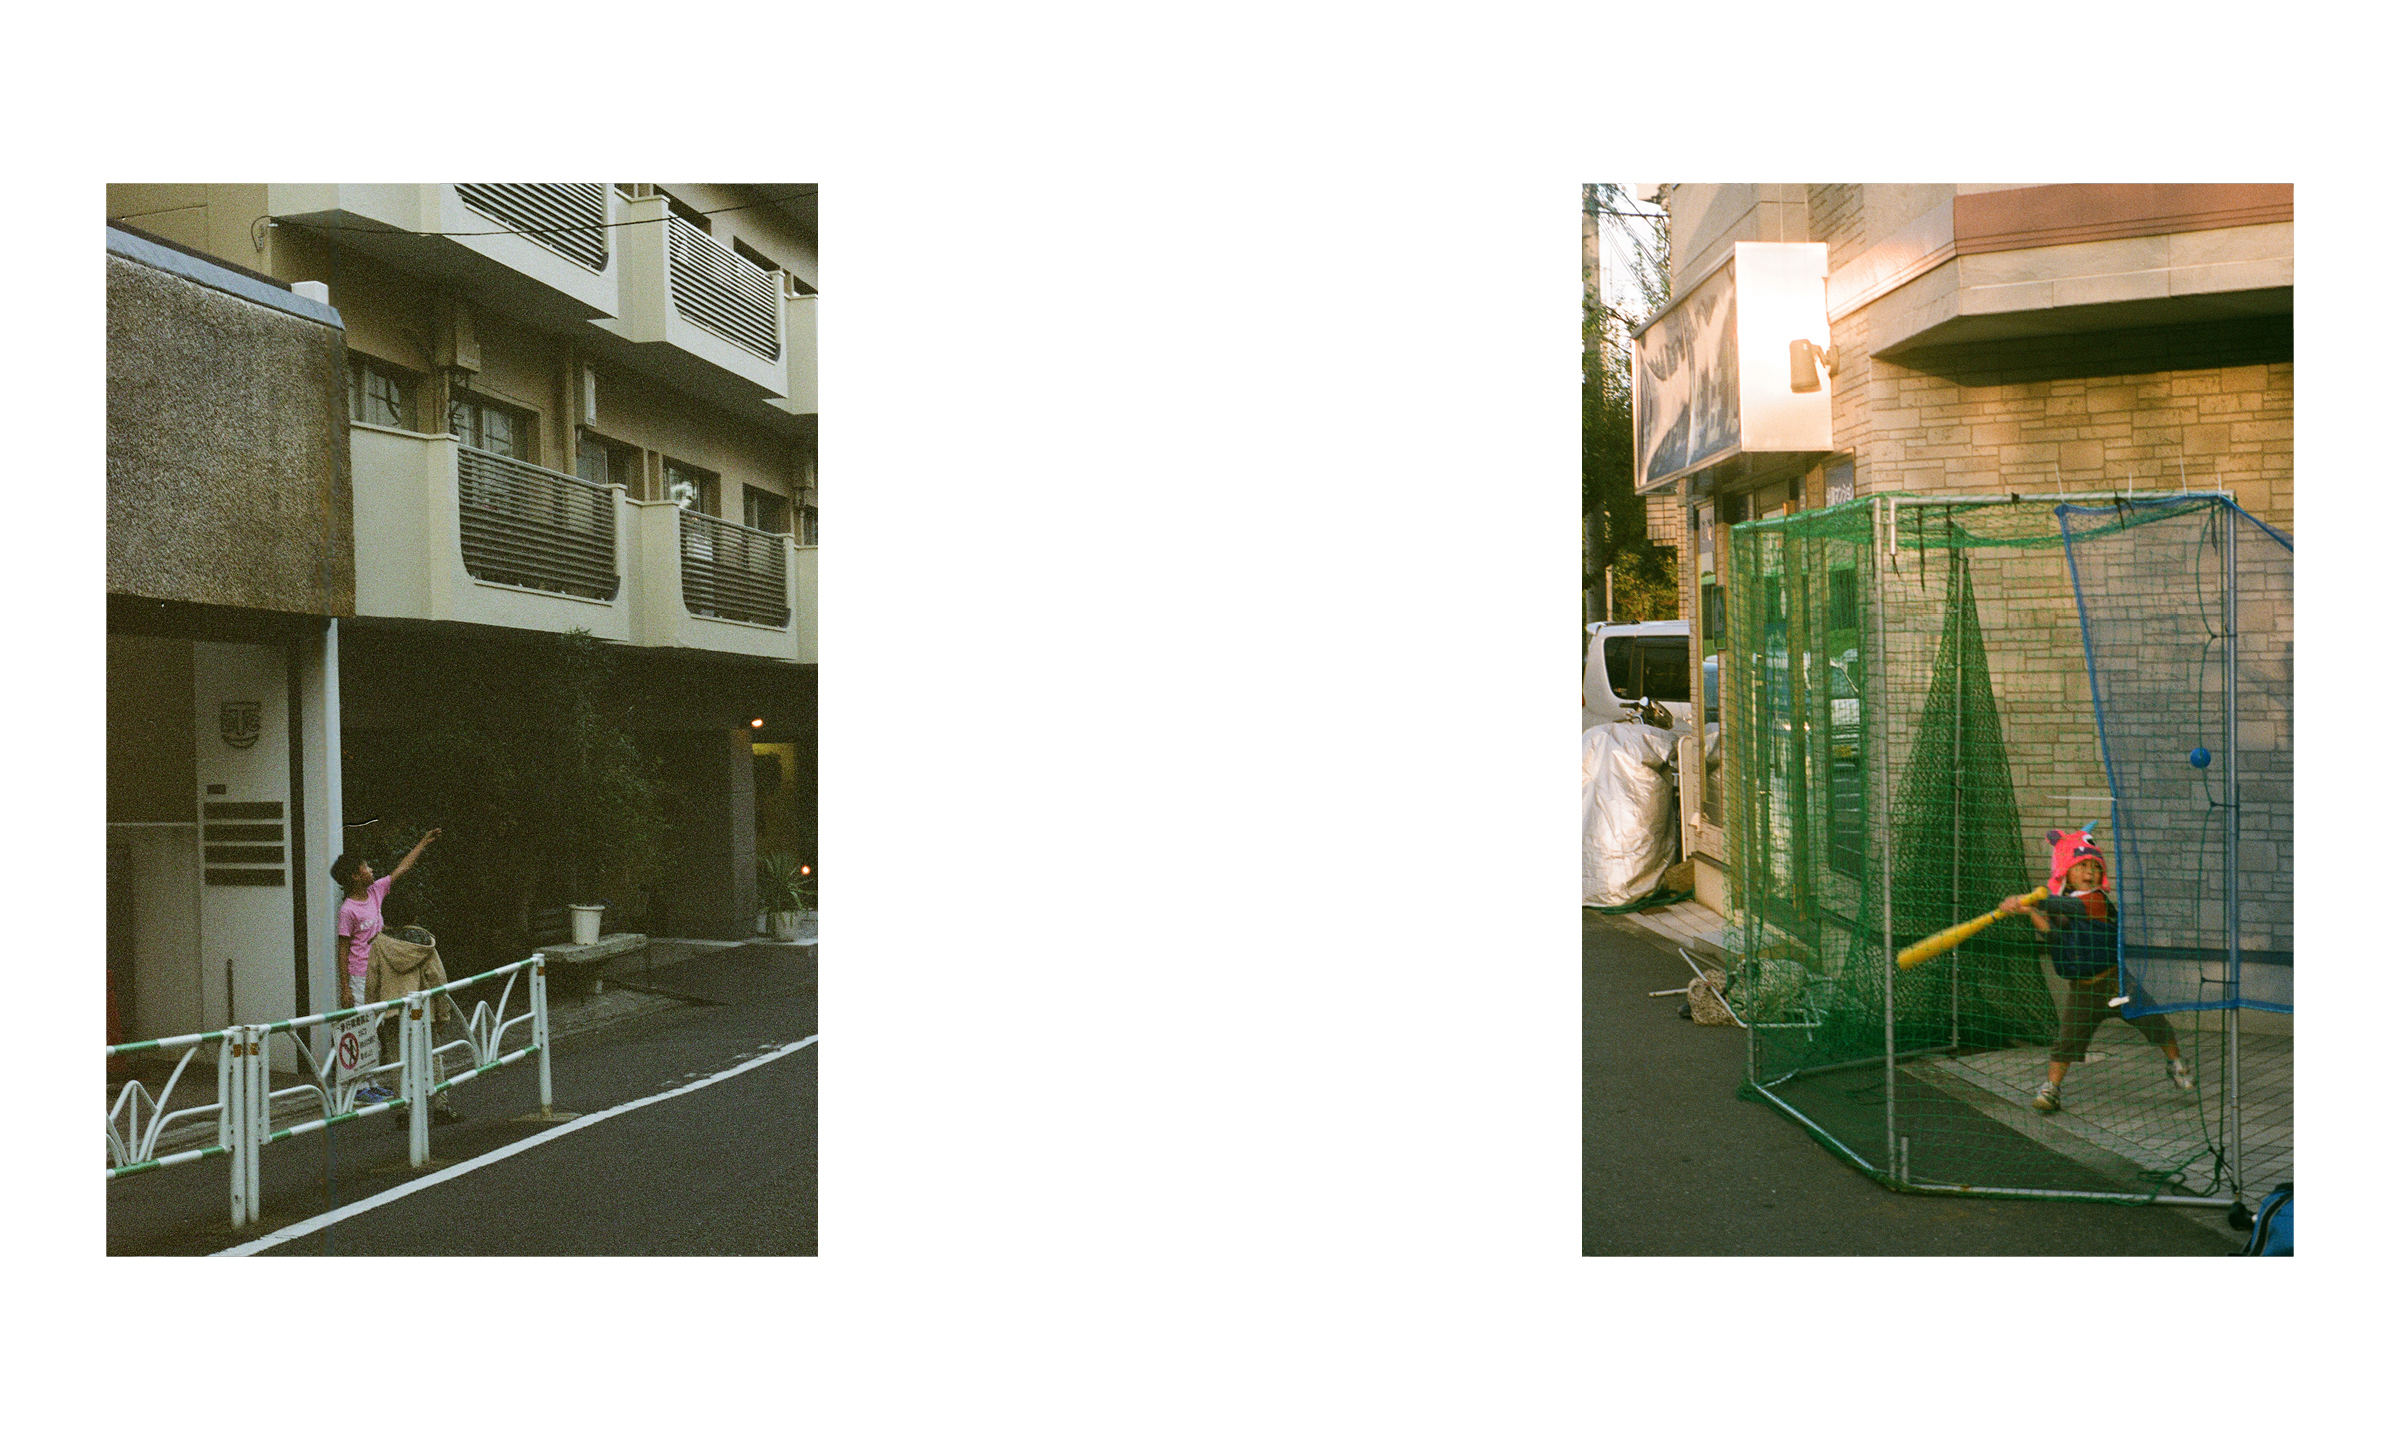 Tokyo_Photography_Case_Study_Layout28.jpg